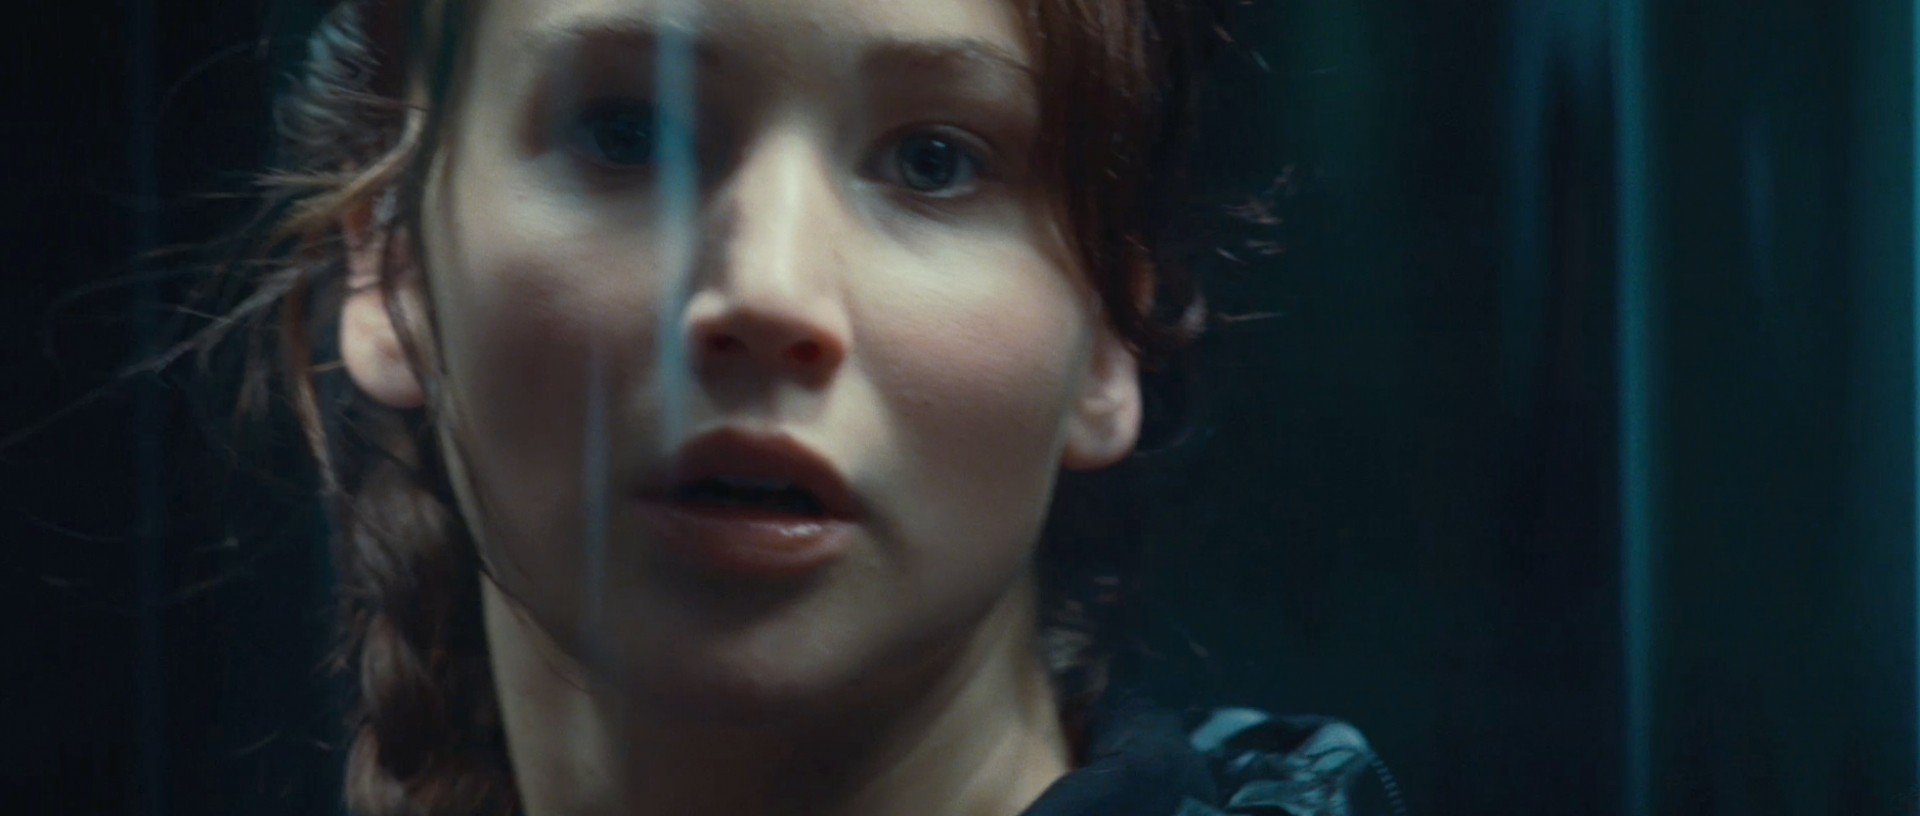 Character profile for Katniss Everdeen from The Hunger